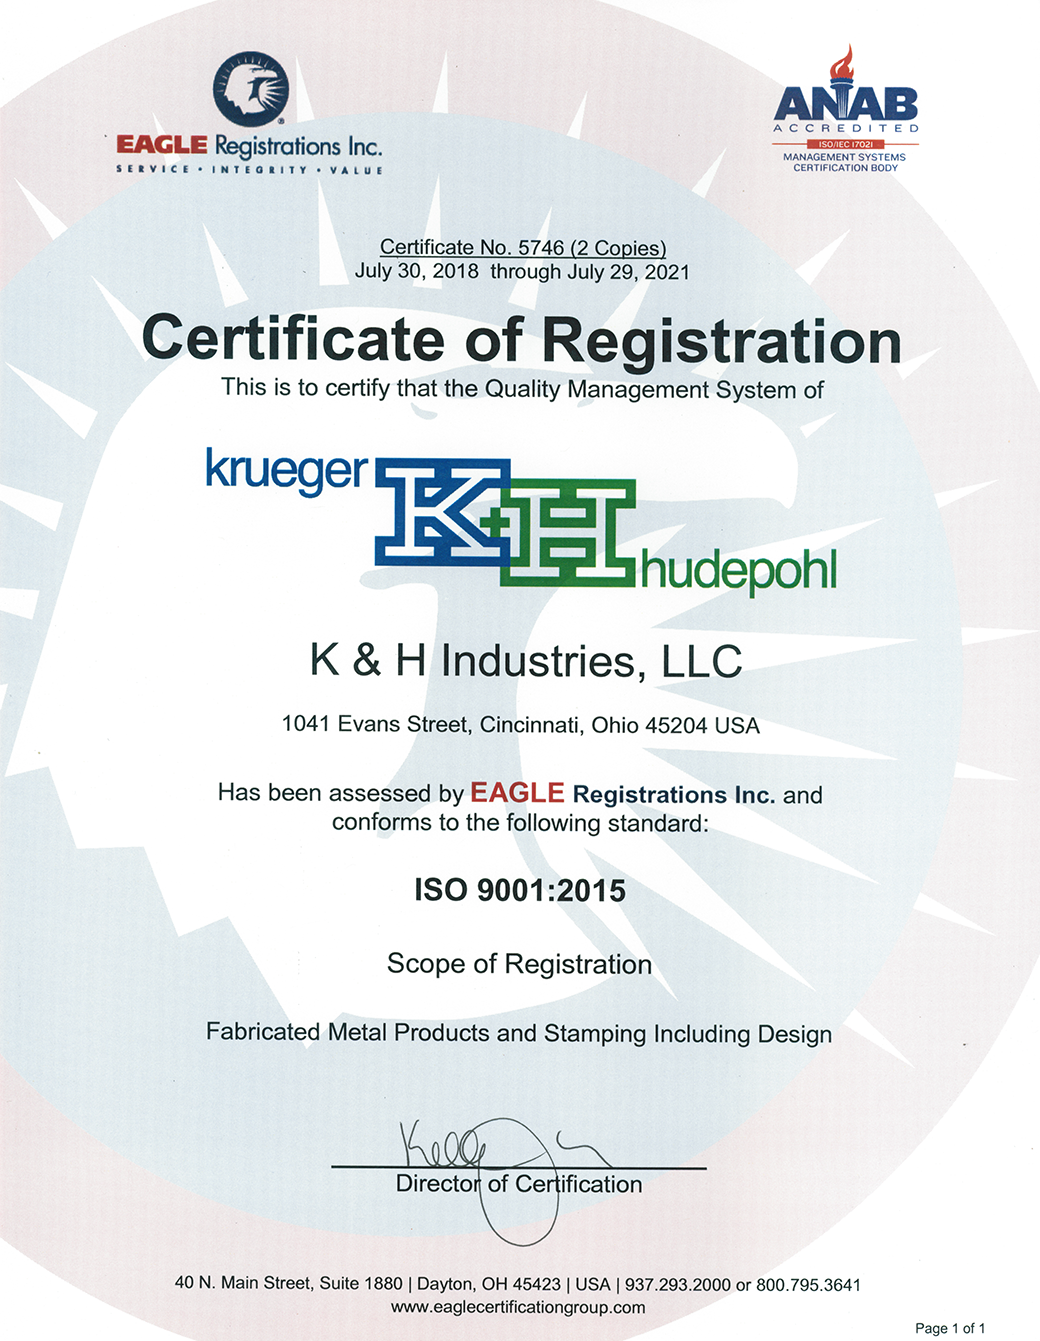 K&H Industries ISO Certification